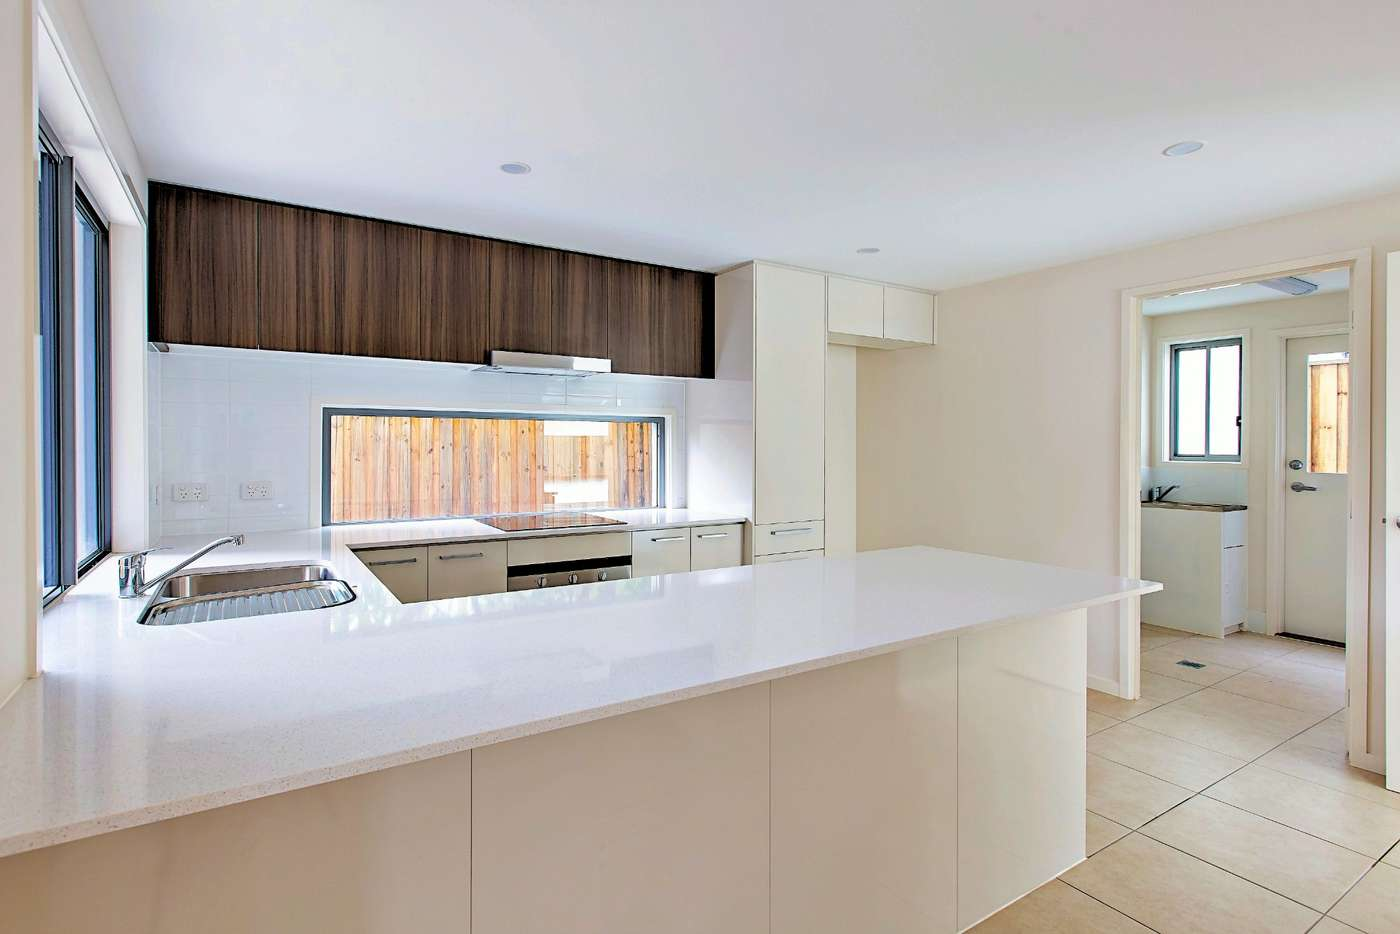 Sixth view of Homely townhouse listing, unit 8/36 Bleasby Road, Eight Mile Plains QLD 4113